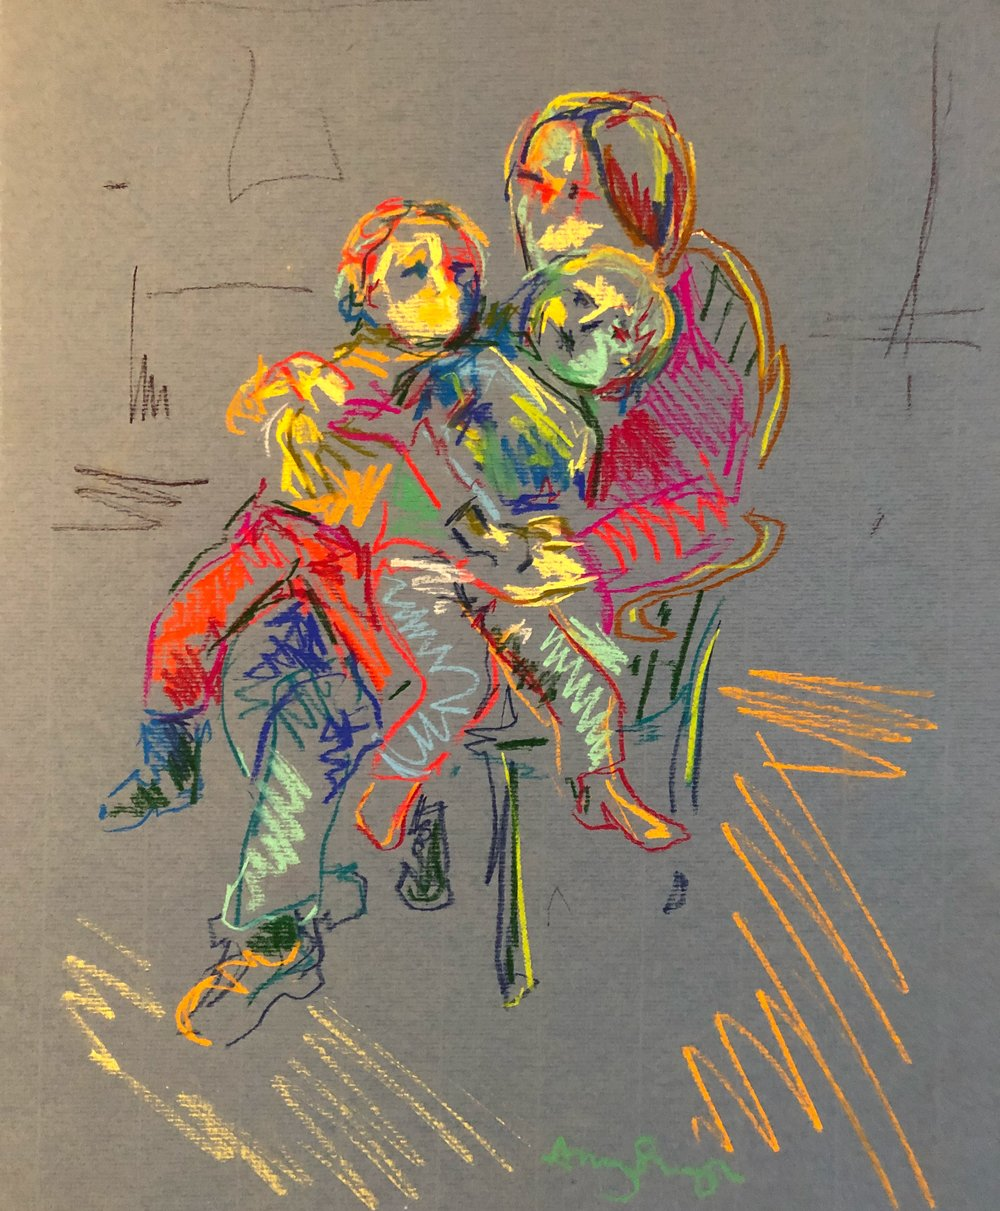 Mother with 2 boys on chair, (firelight), pastel on paper, framed 40x50cm £280